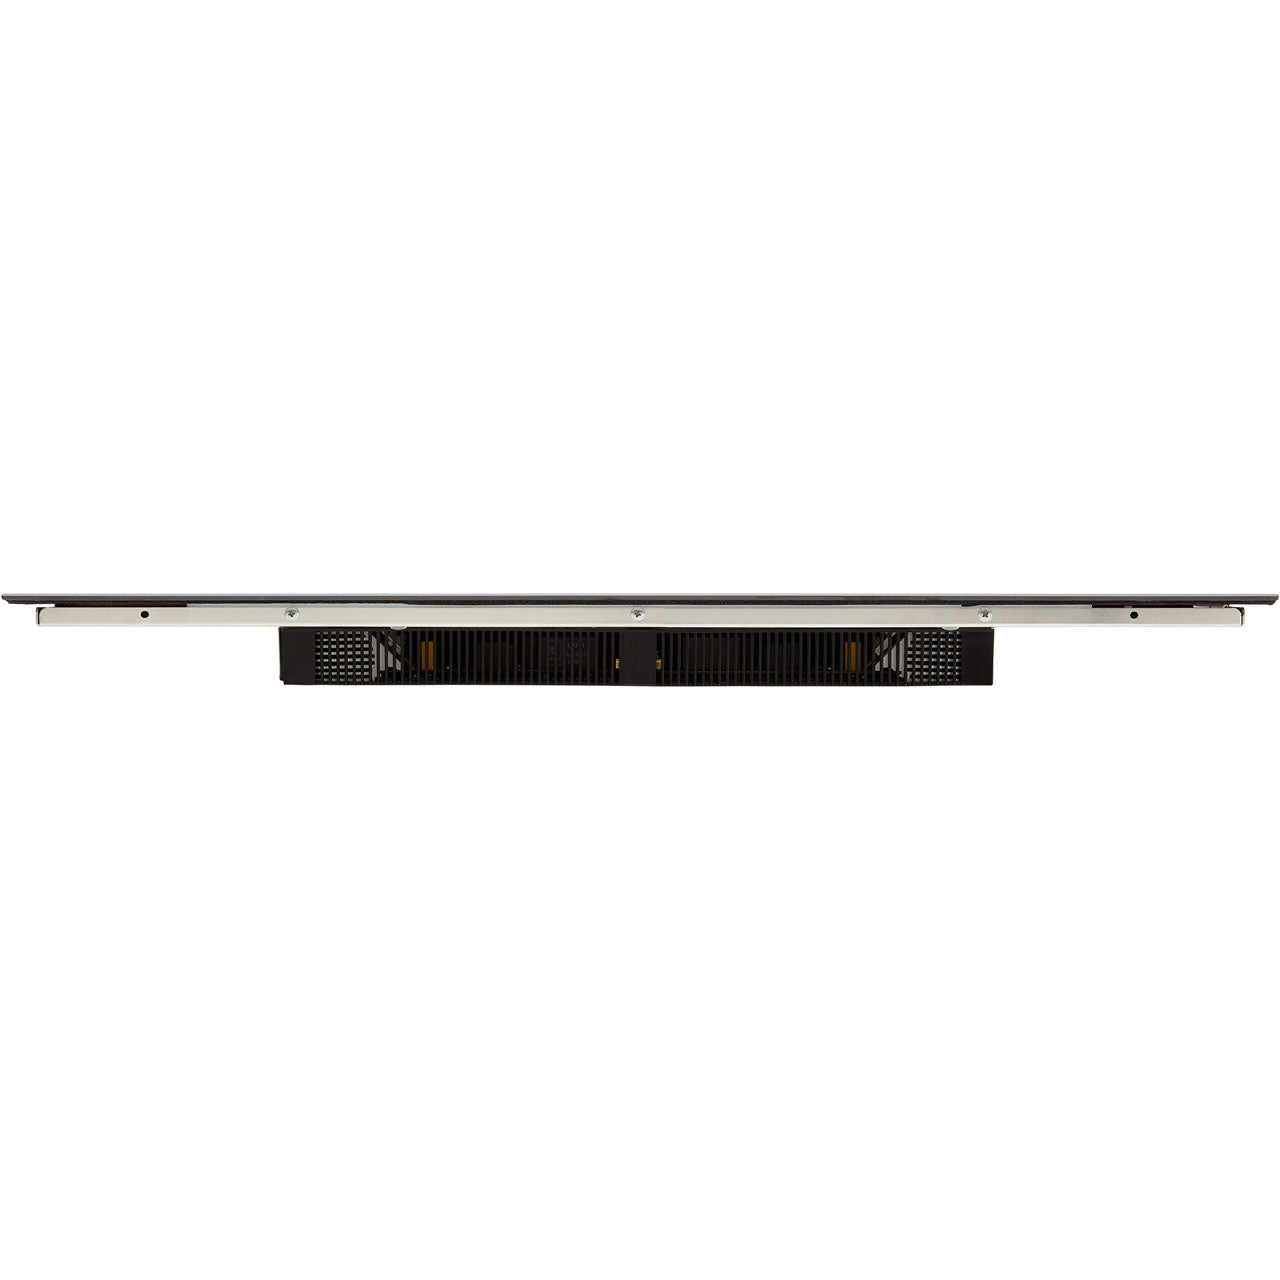 Hoover HPI 82 80cm Flexi-Zone Induction Hob - Black Glass - Horizontal View